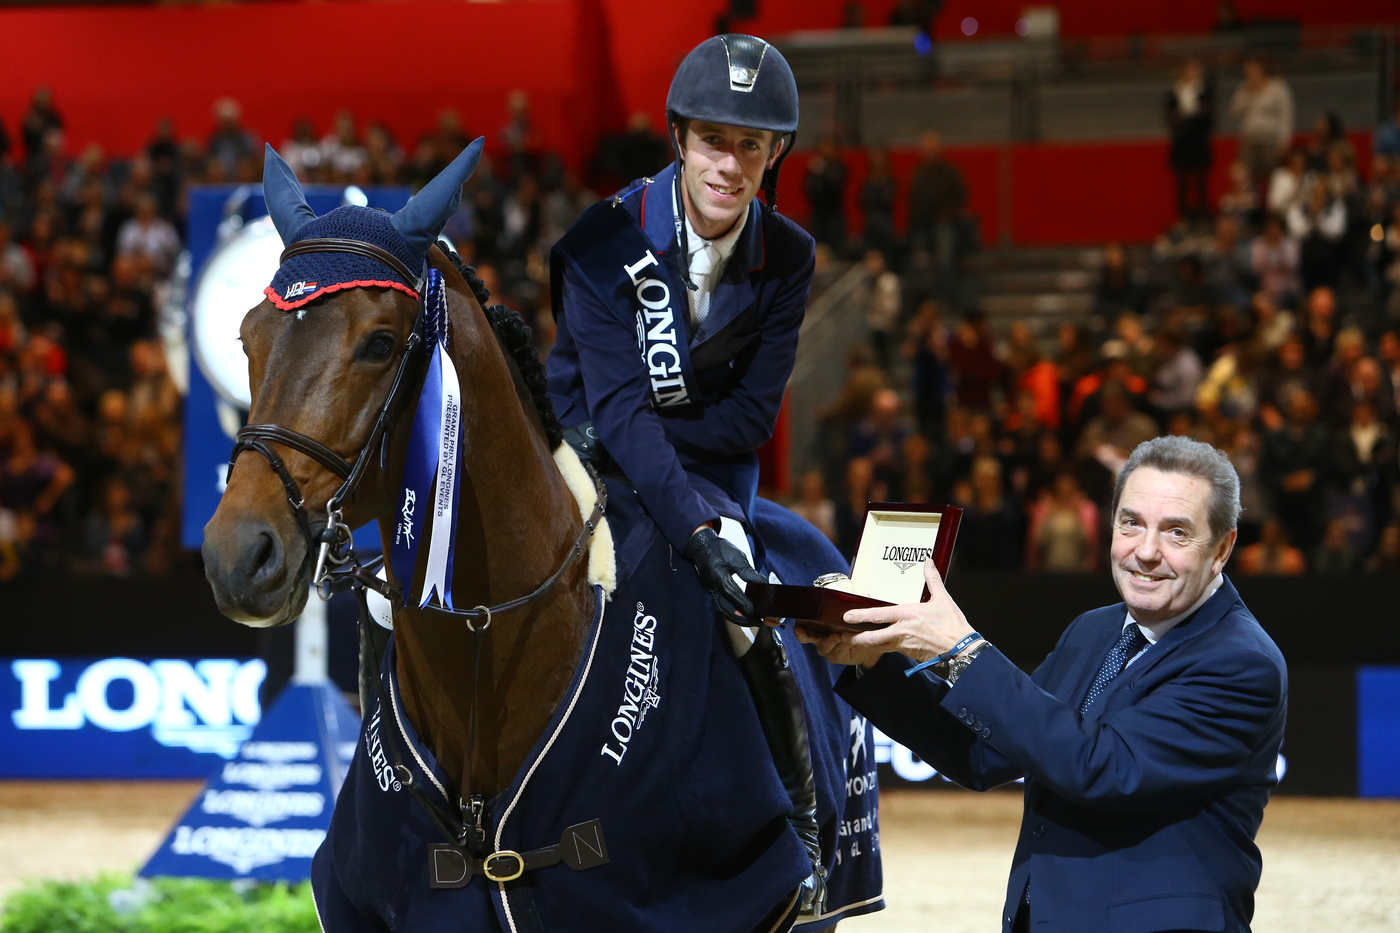 Longines Show Jumping Event: Longines  – Official Timekeeper of Equita'Lyon 6